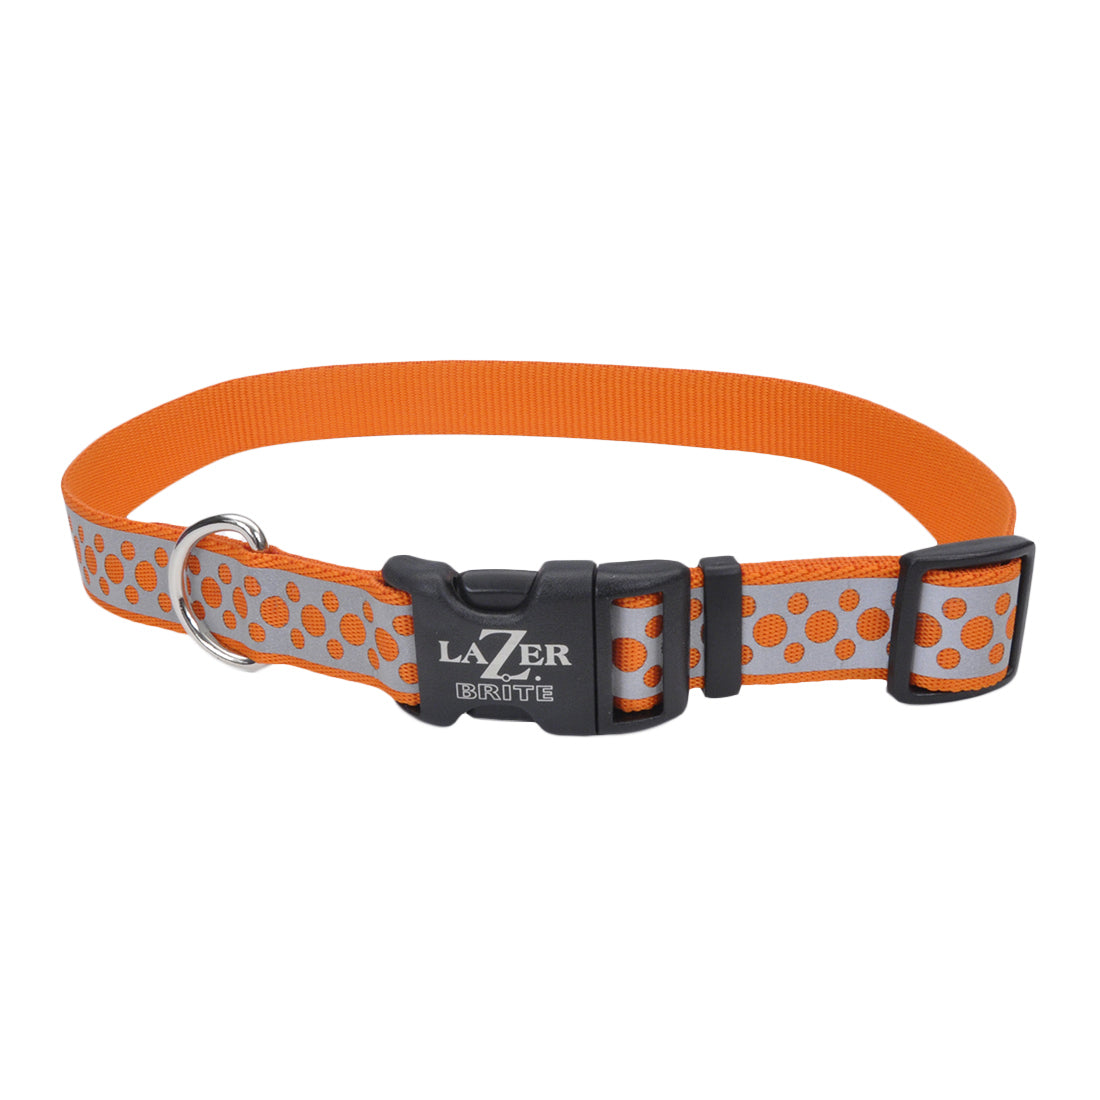 "Coastal Lazer Bright Reflective Adjustable Collar 18-26"" - 1"" Orange Abstract Rings"